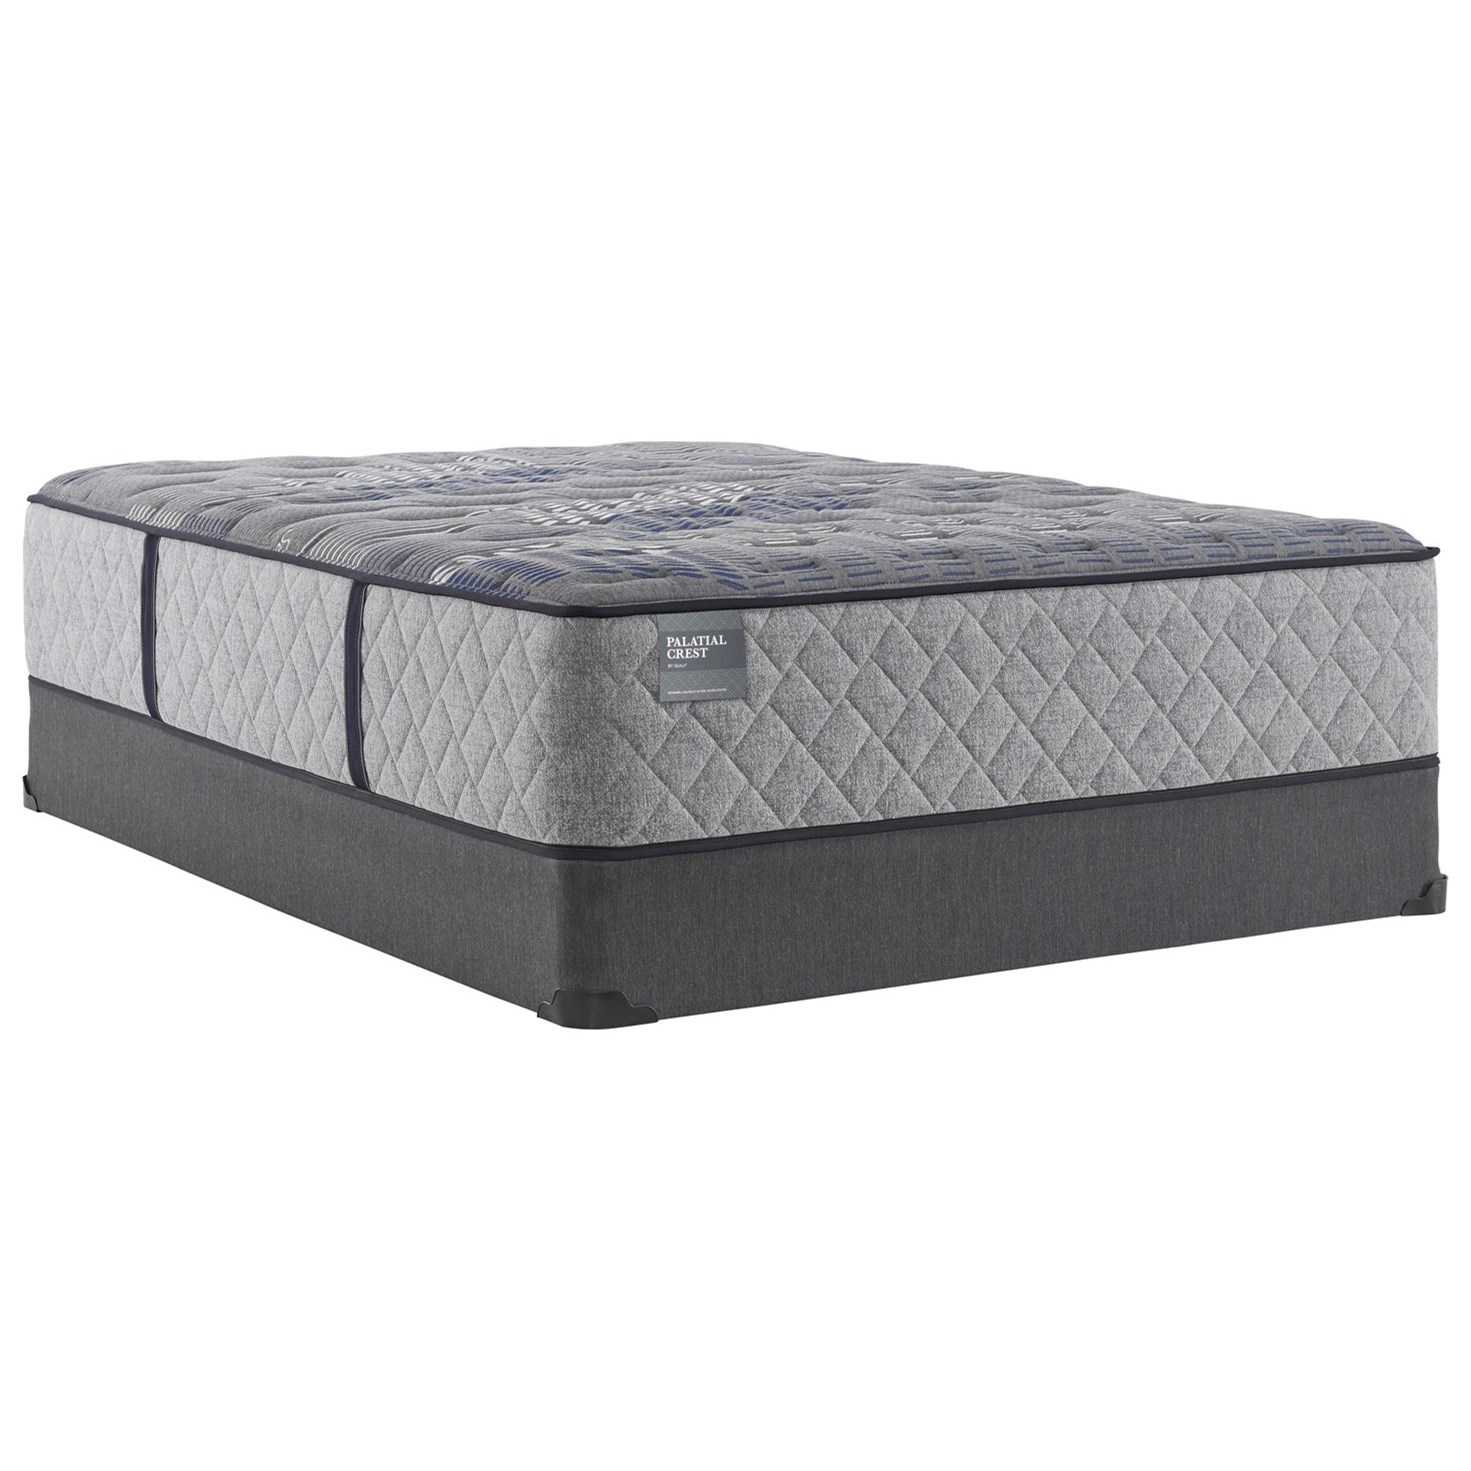 "Lordship Hybrid Firm TT B8 Full 15"" Firm Hybrid Mattress Set by Sealy at Westrich Furniture & Appliances"